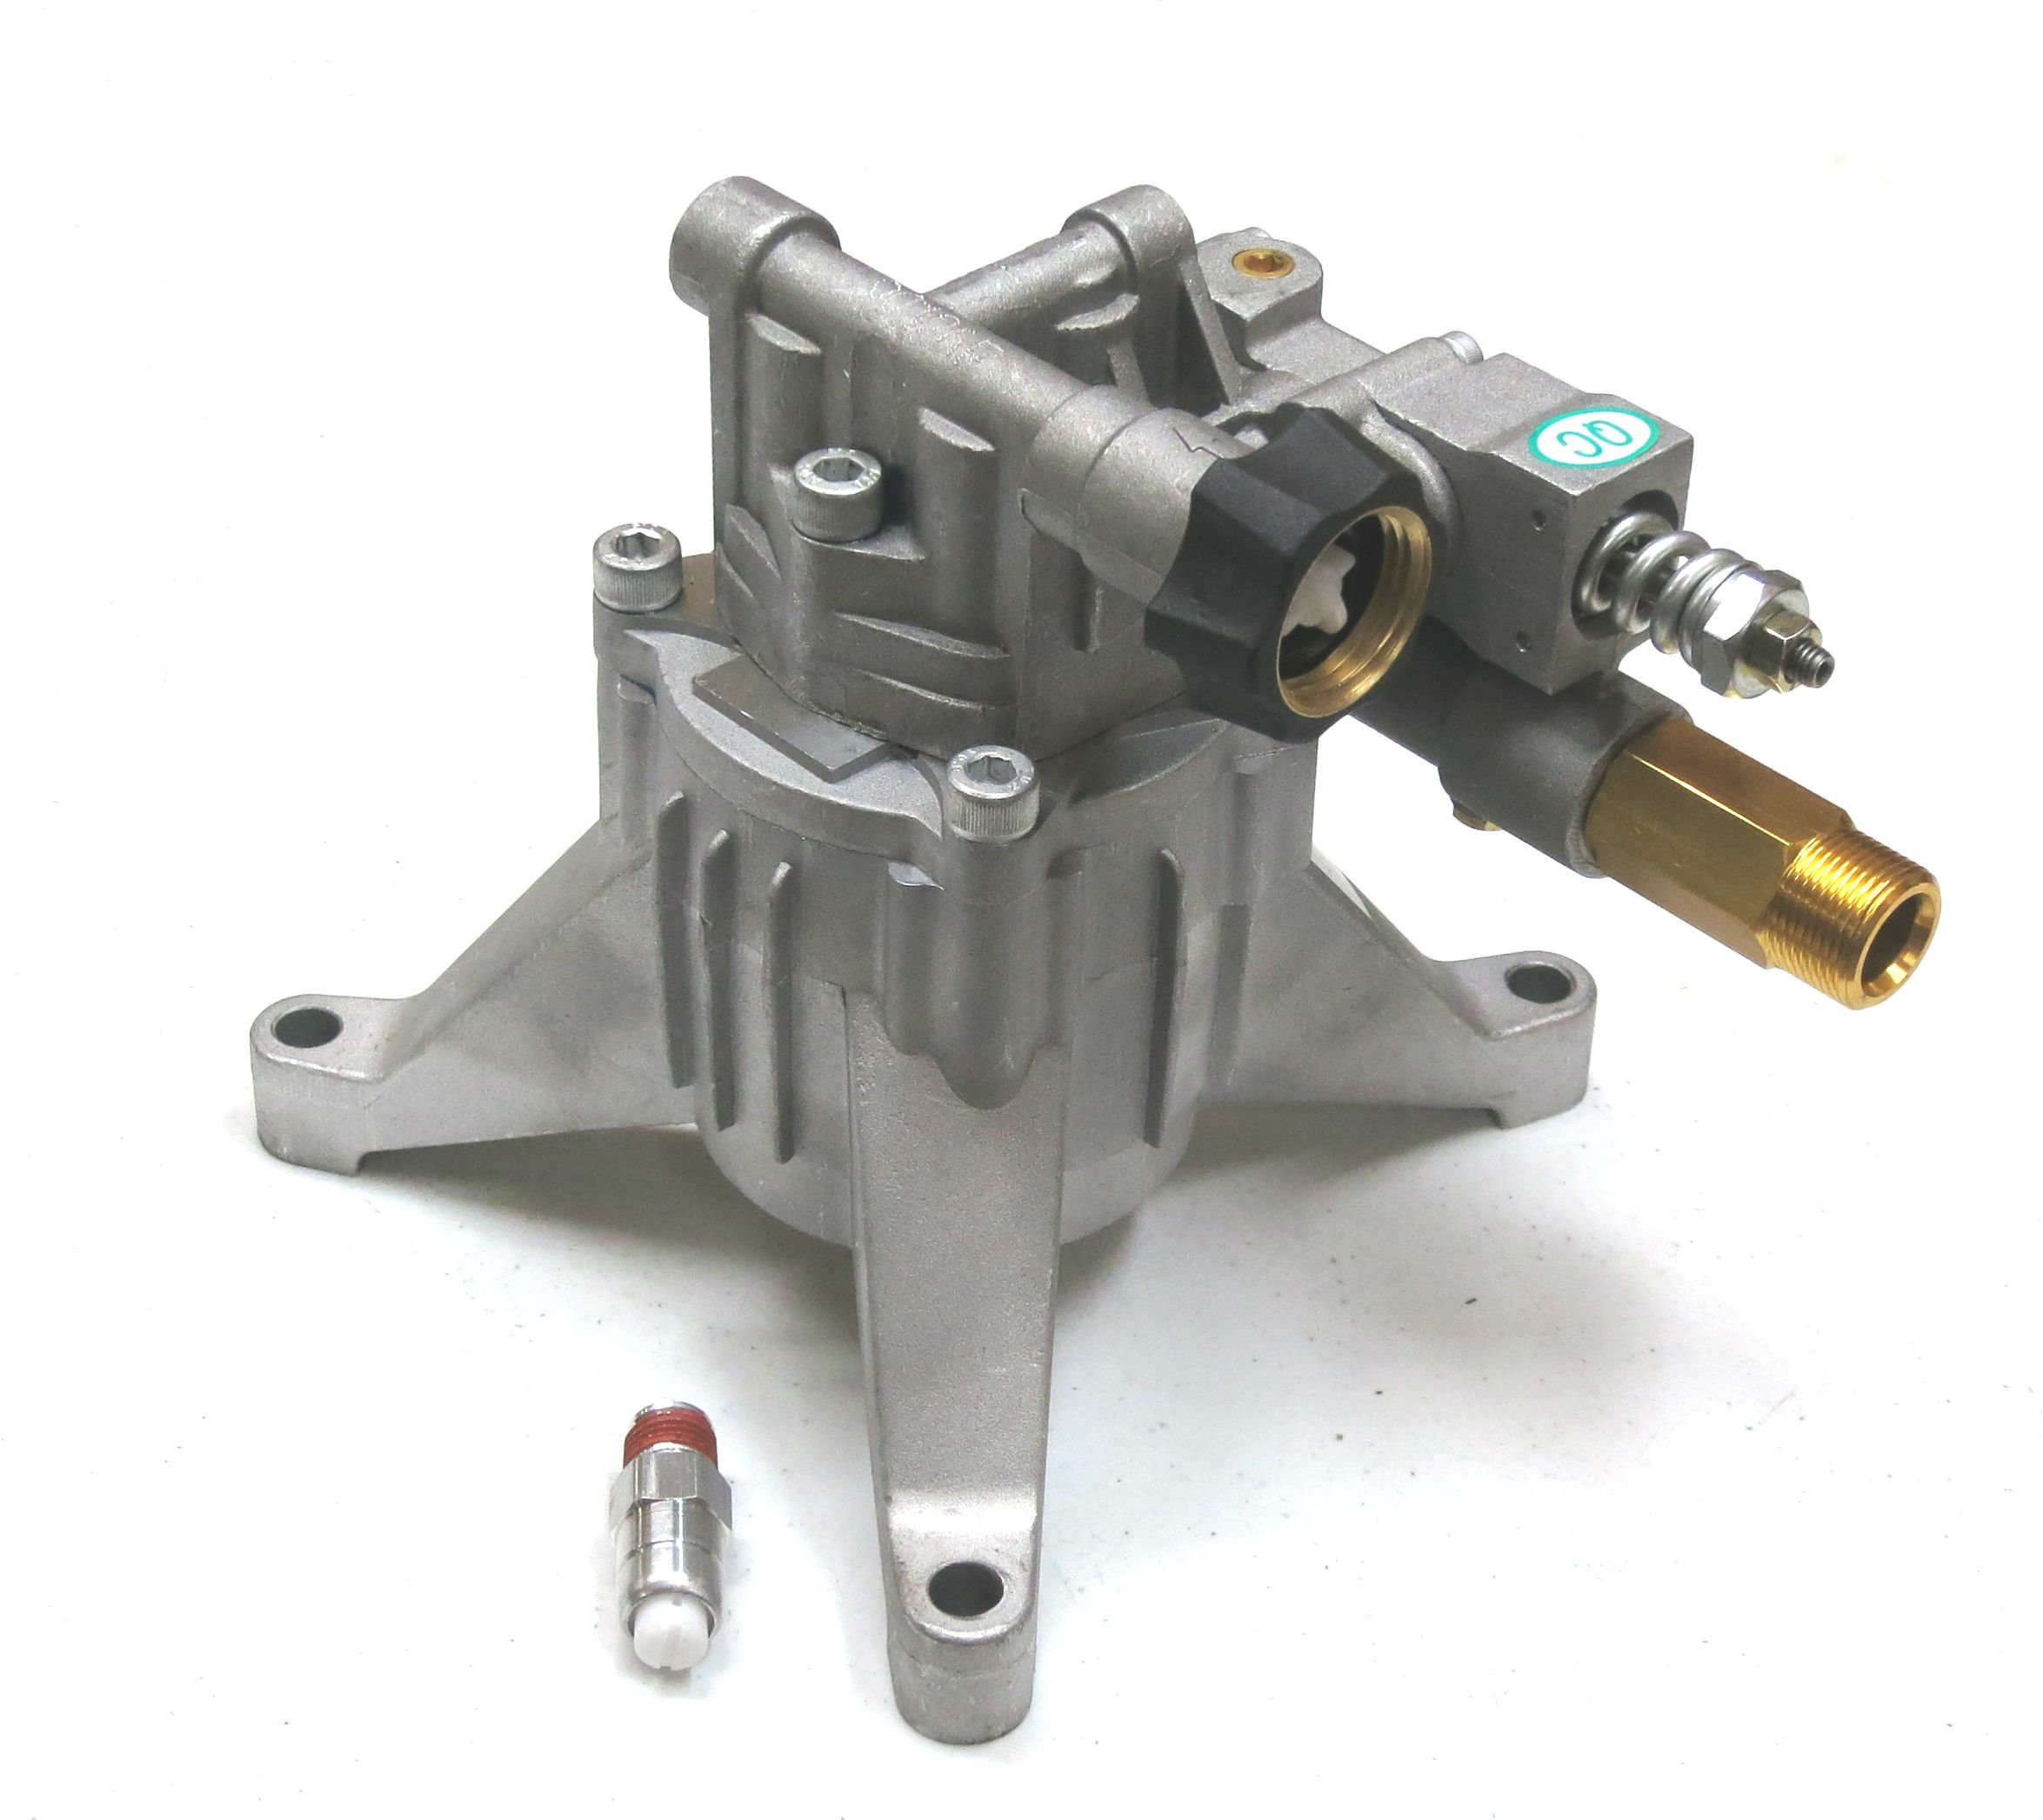 Homelite Universal POWER PRESSURE WASHER WATER PUMP 2800 psi 2.5 gpm fits MANY MODELS 308653052 by Homelite (Image #1)